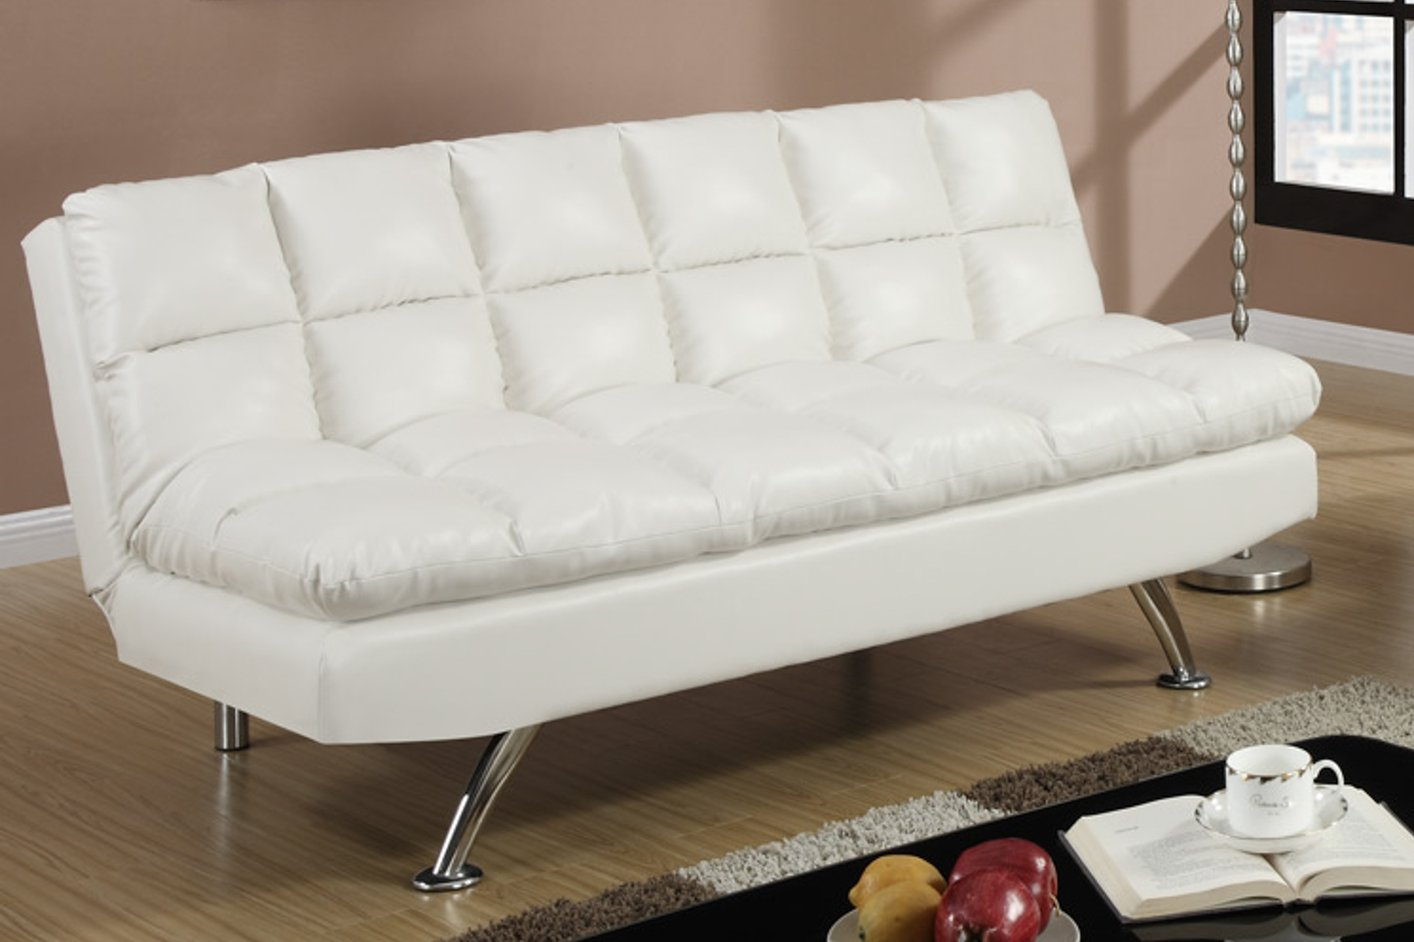 Poundex F7015 White Twin Size Leather Sofa Bed  StealASofa Furniture Outlet Los Angeles CA